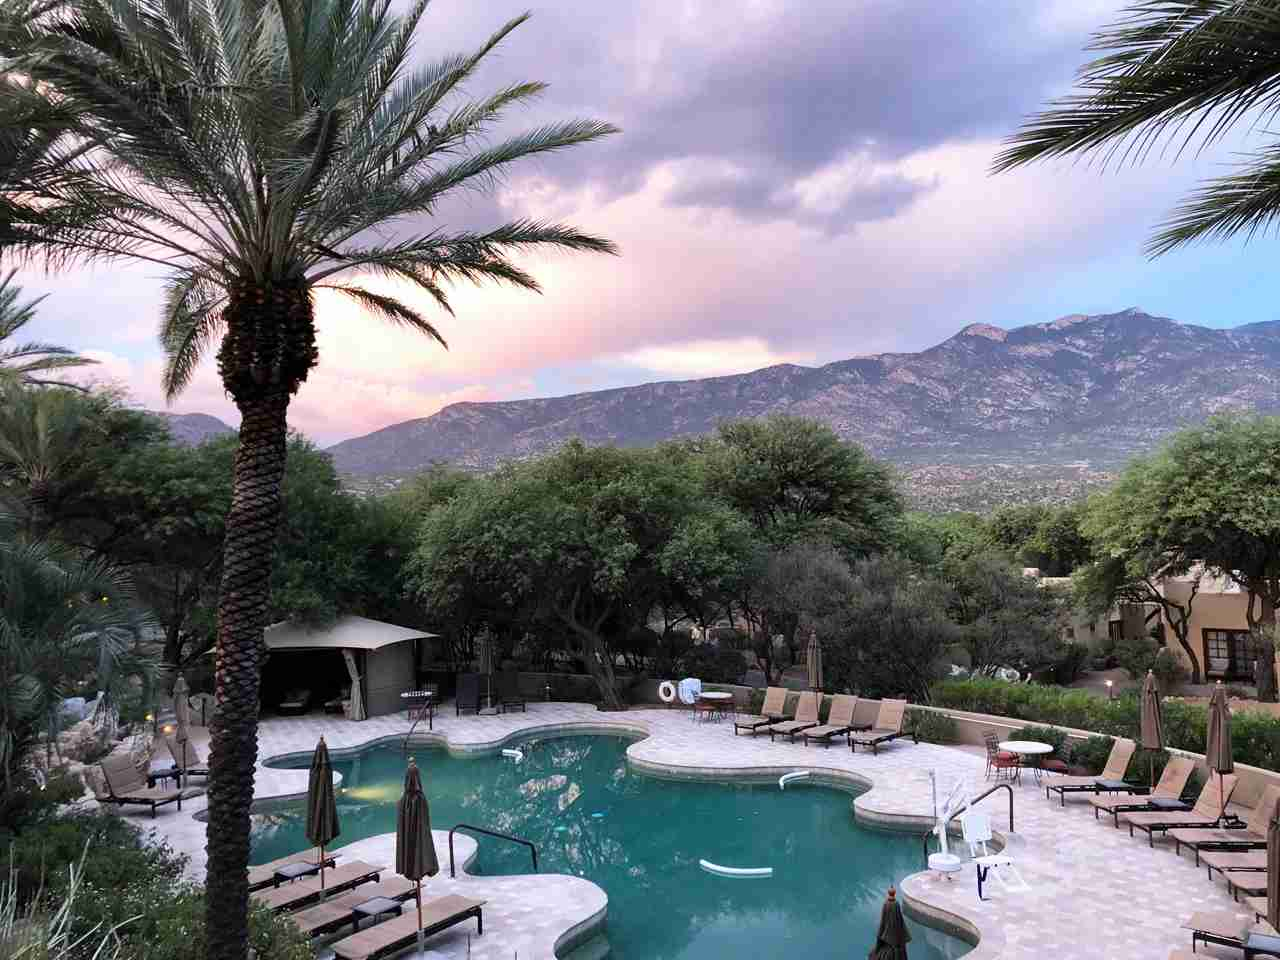 Photo of Miraval by Summer Hull/TPG